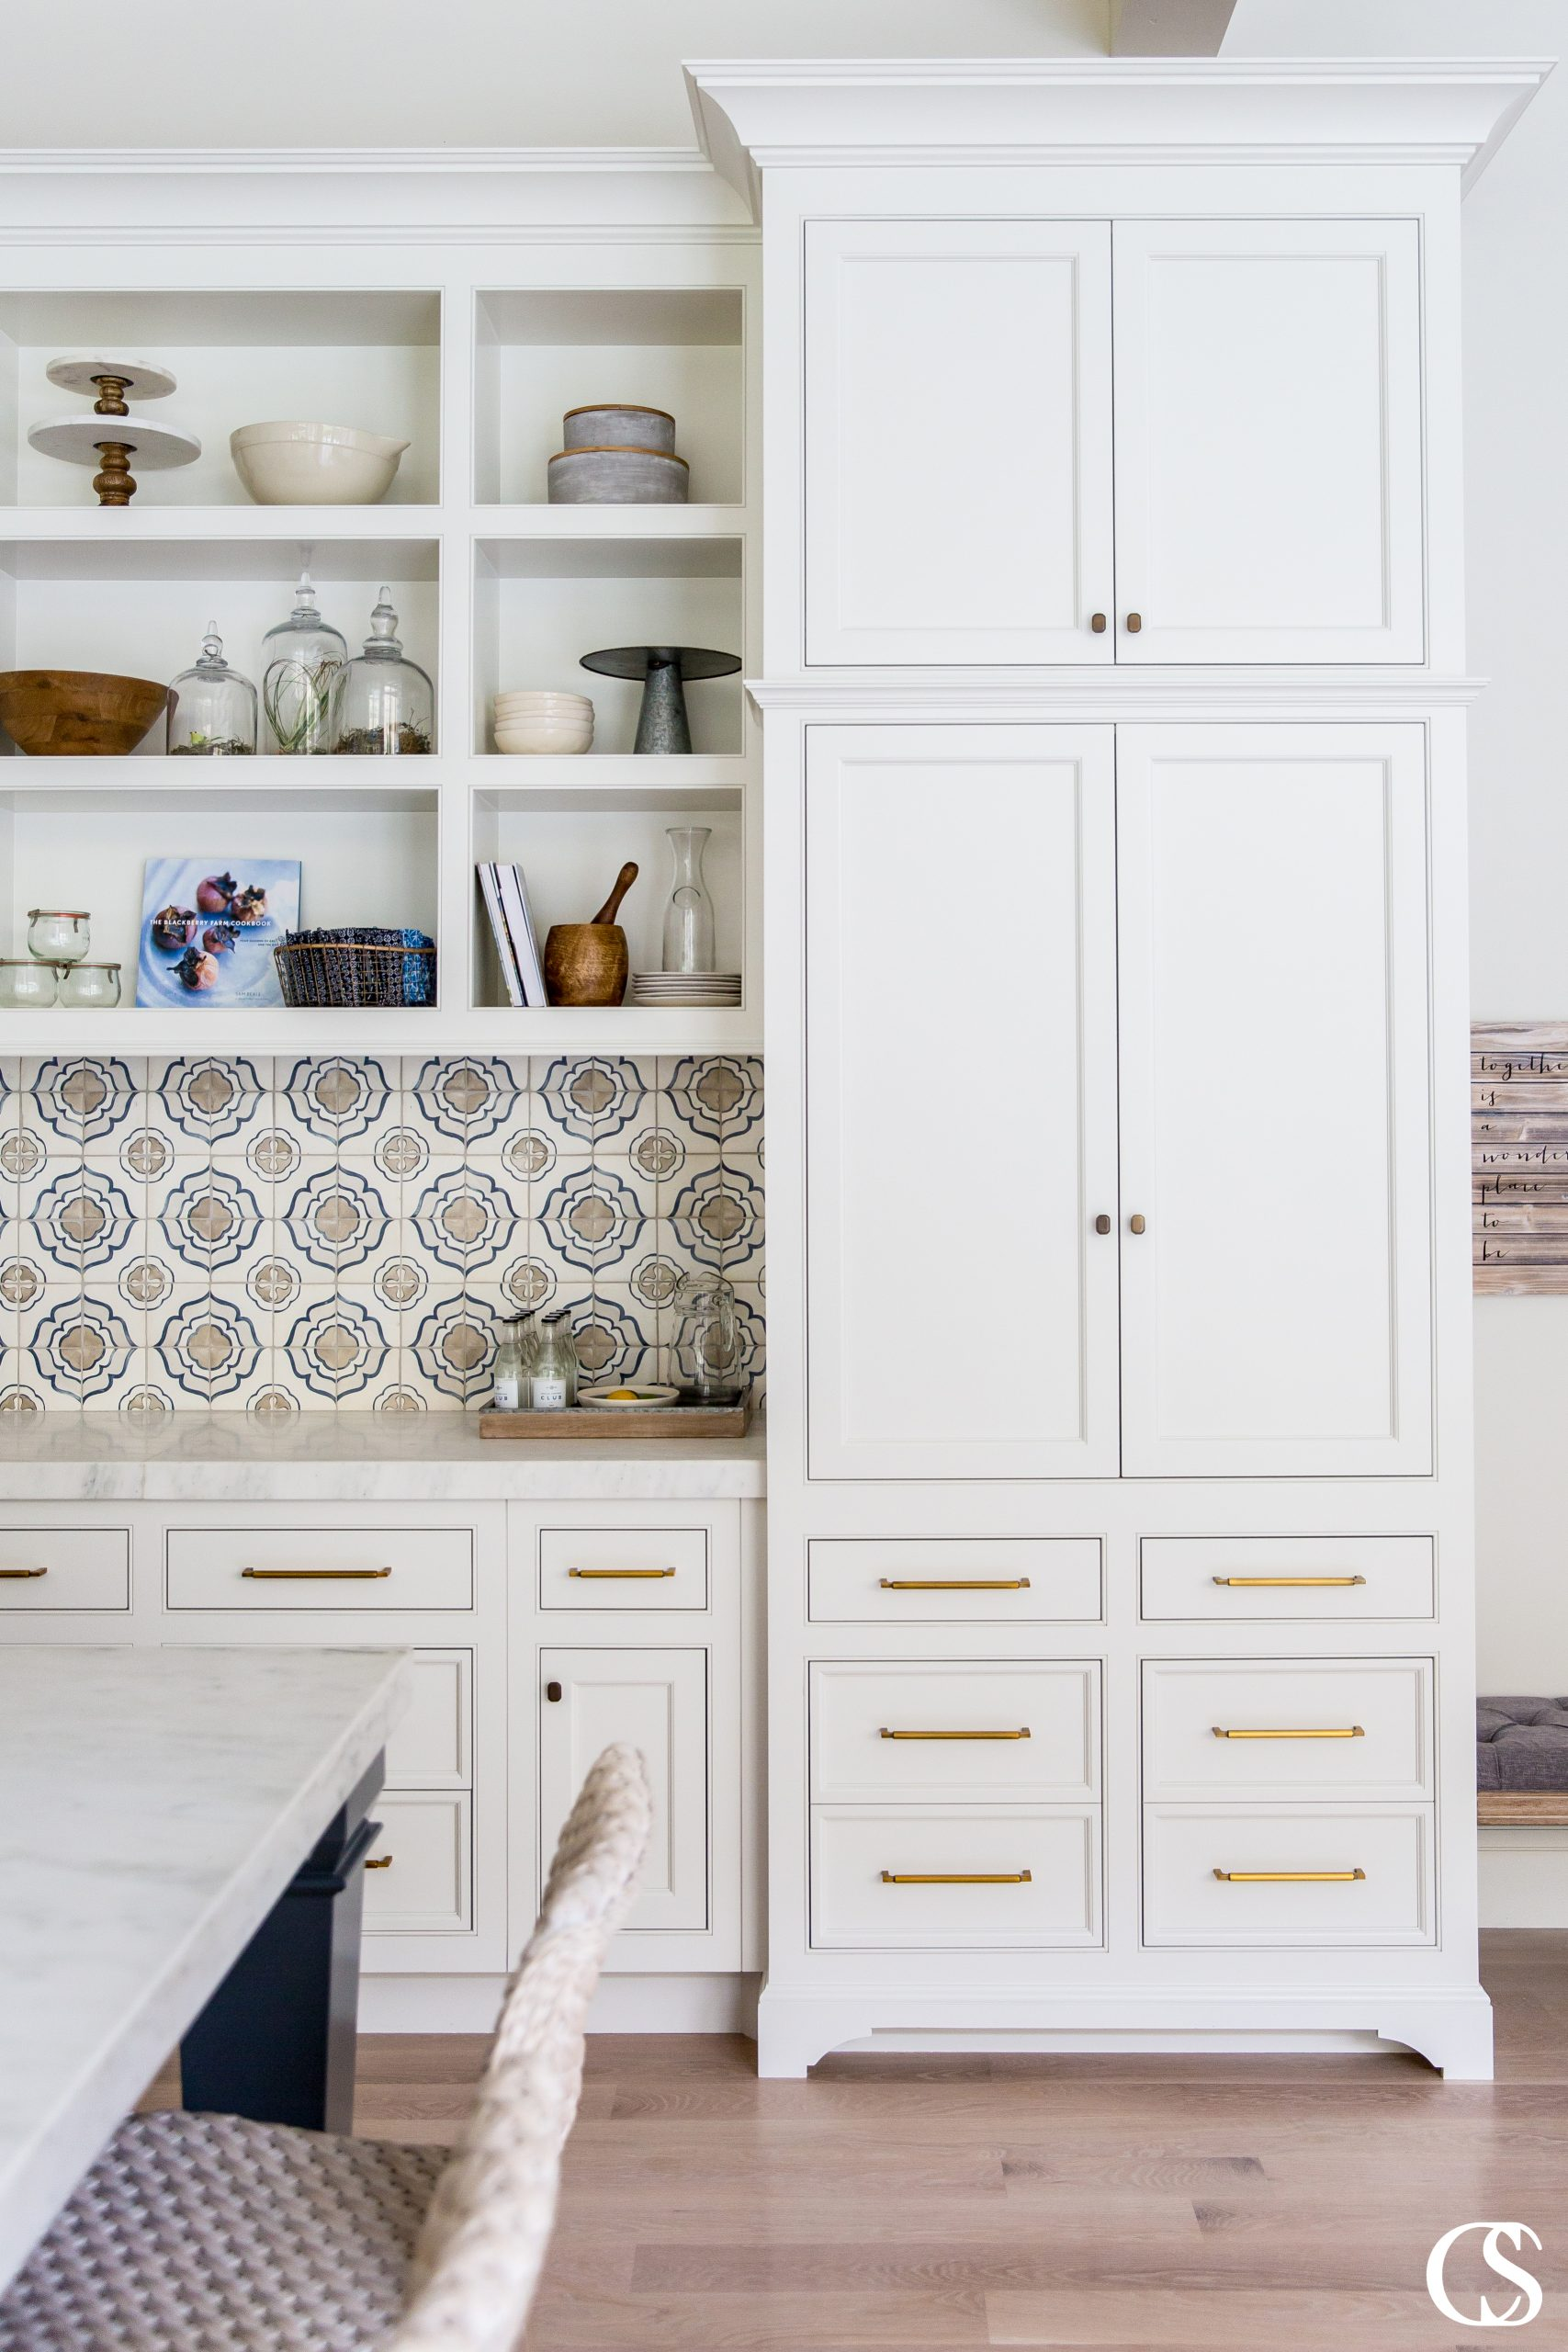 We love the mix of hardware styles mixed with a detailed tile backsplash in this set of custom cabinets for the kitchen and an open concept living room.